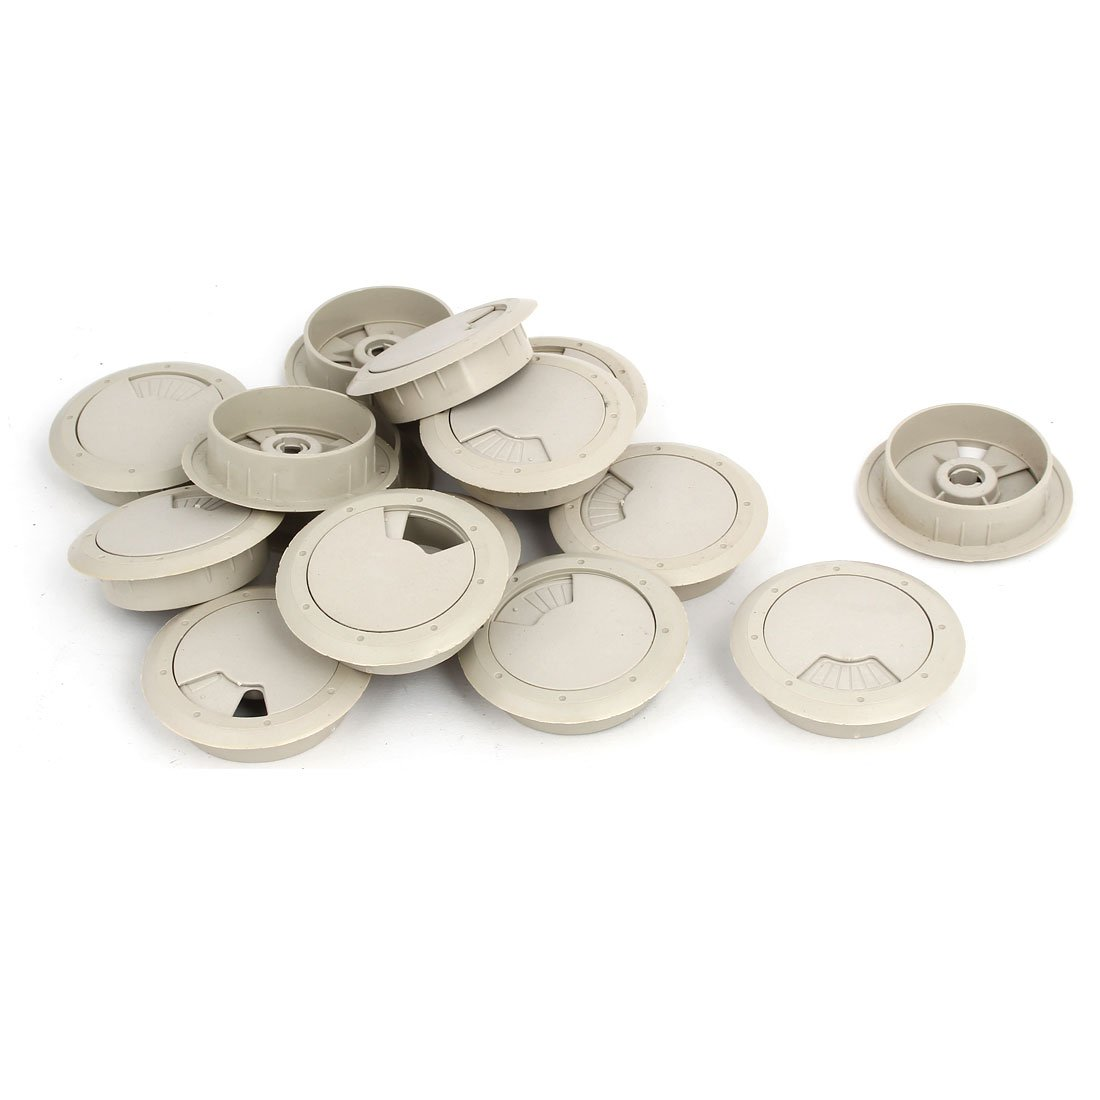 uxcell Computer Desk 53mm Dia Plastic Rotatable Grommet Cable Hole Cover Gray 15pcs